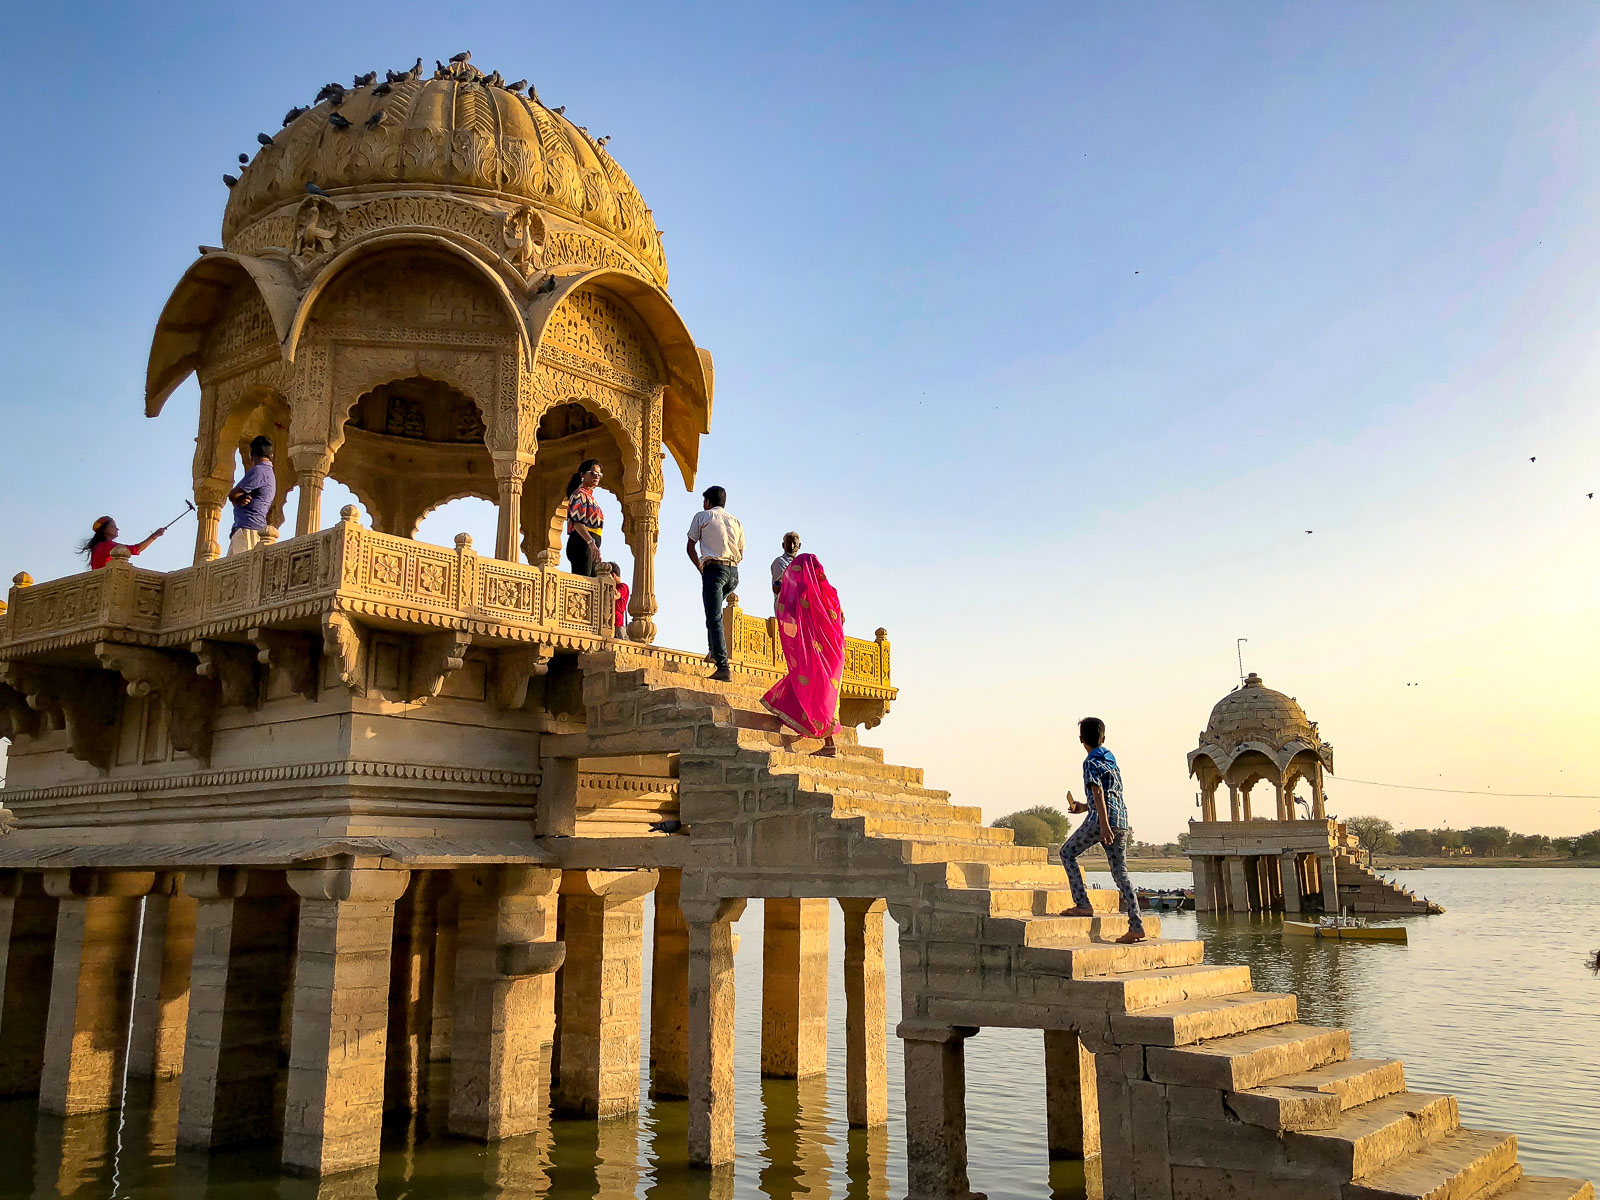 The Best Places to Visit in Jaisalmer – A 2 or 4 Day Jaisalmer Itinerary